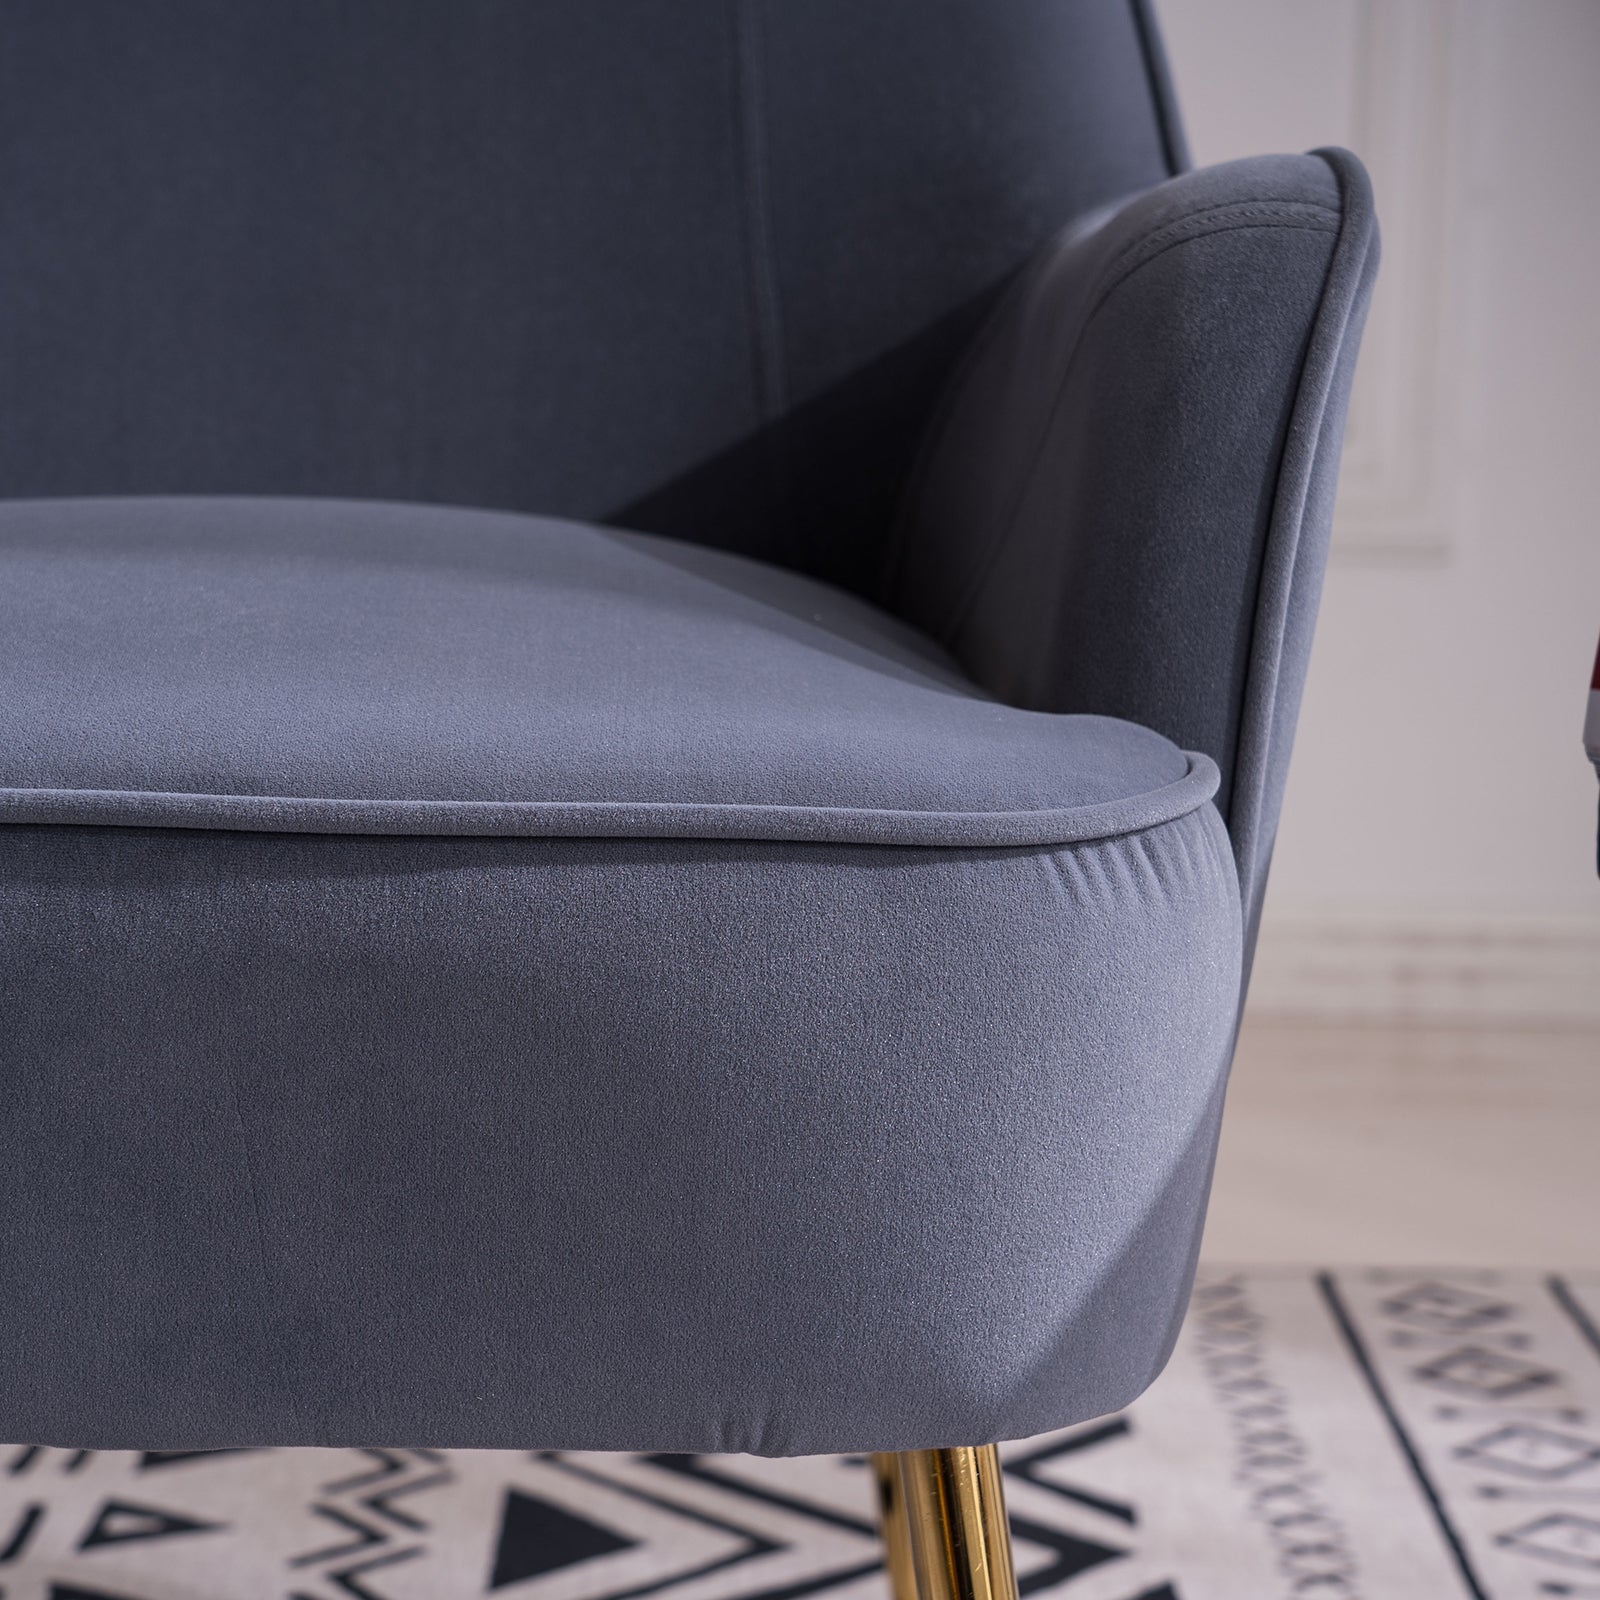 Slate Gray Velvet Accent Chair With Gold Metal Legs BH5272484